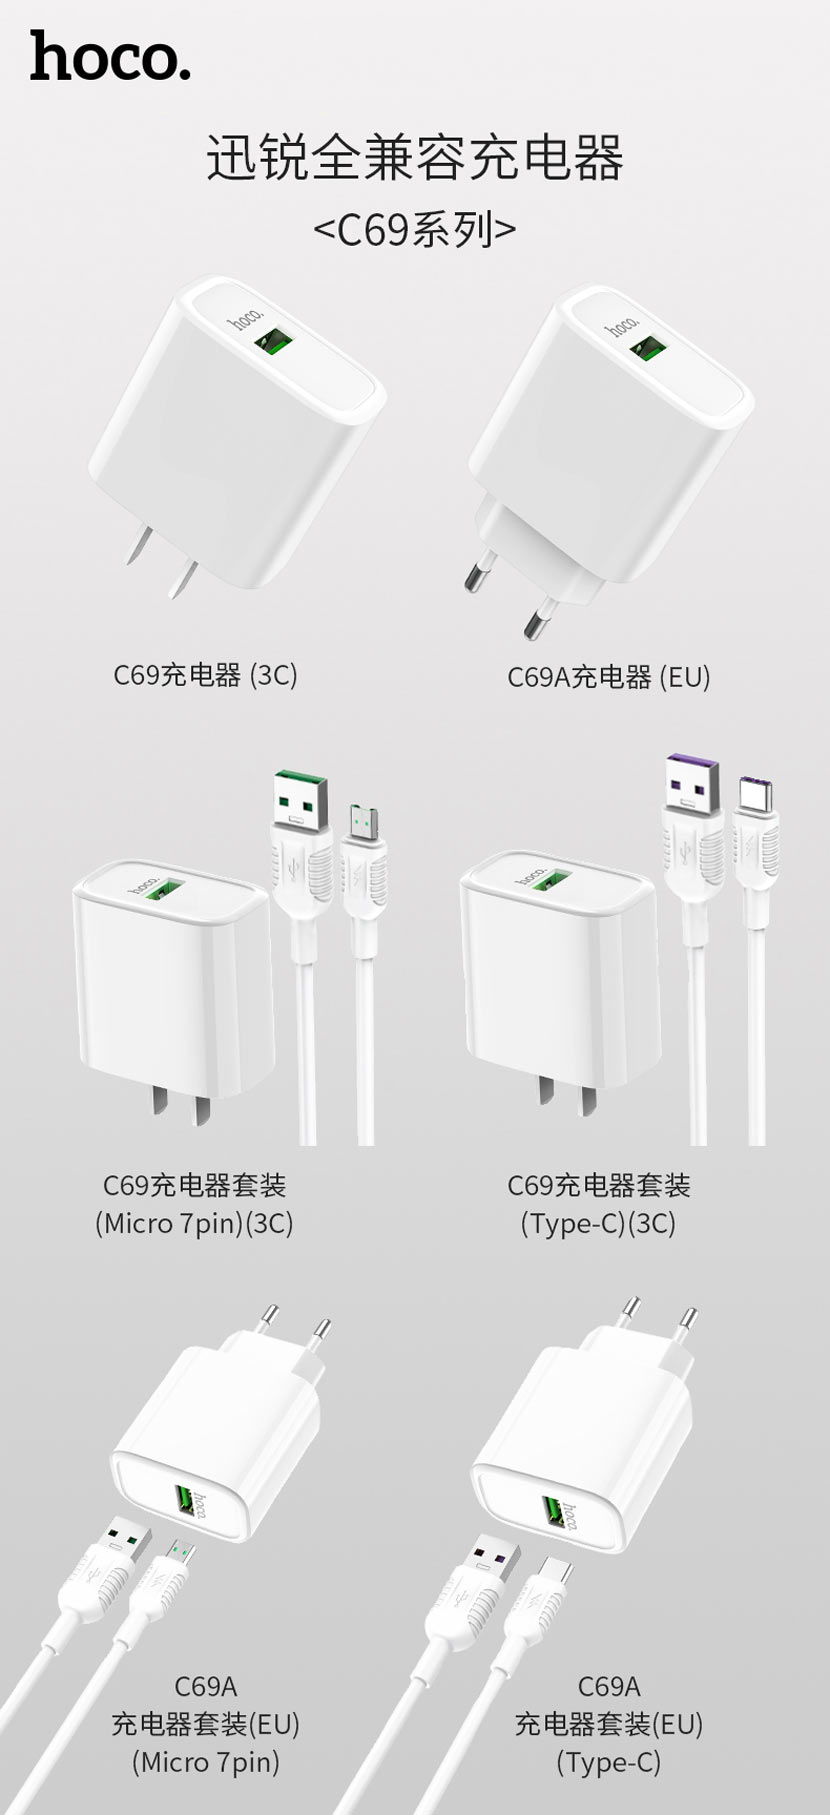 hoco news c69 dynamic power fully compatible charger set cn